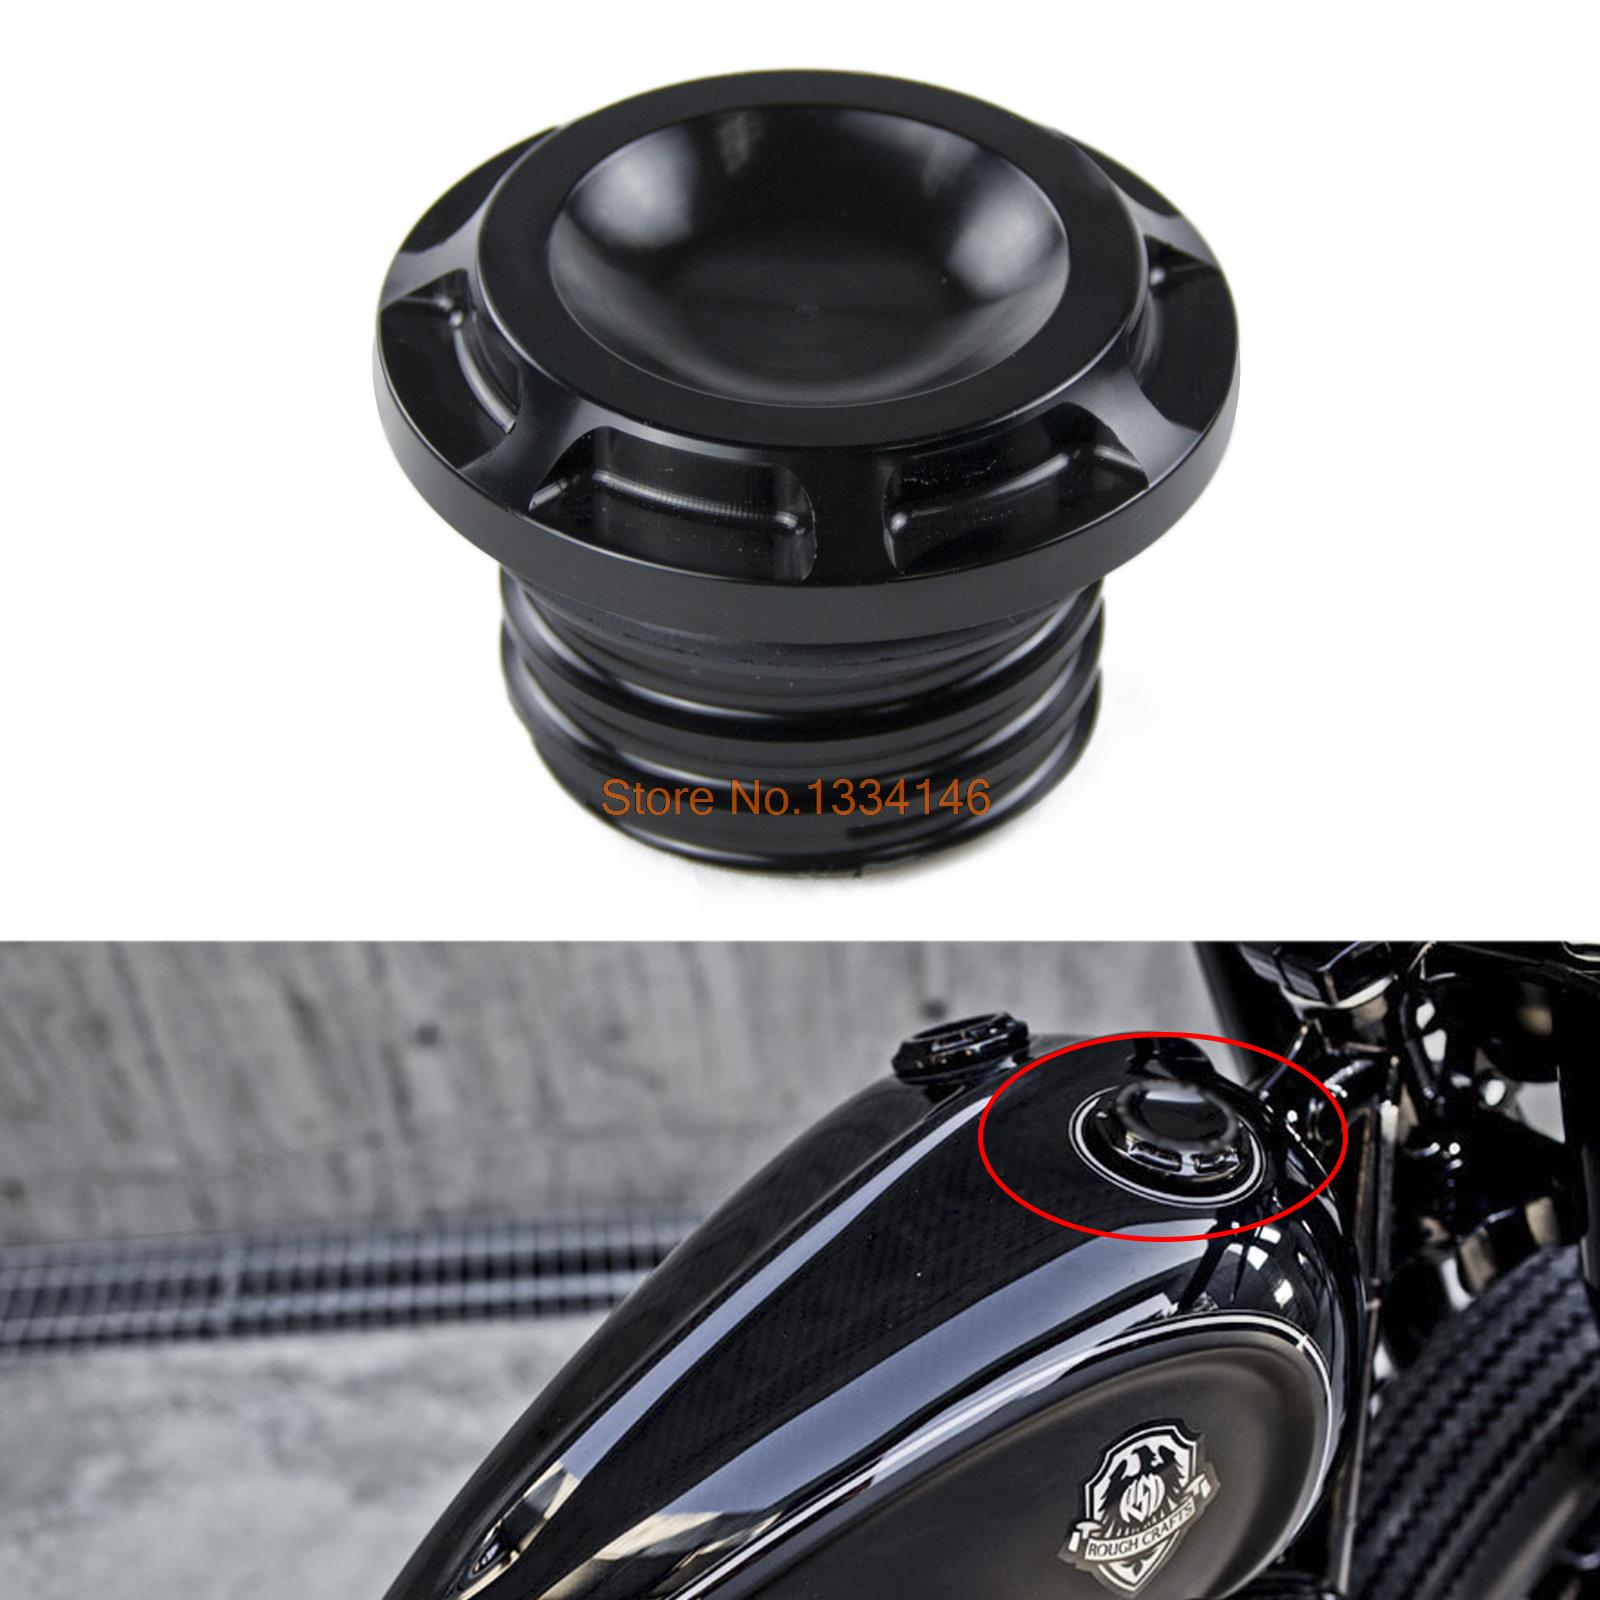 Aluminum Motorcycle Fuel Gas Oil Tank Cap Cover Guard For Harley Touring Road King FLHR Modles 1996-2015<br><br>Aliexpress